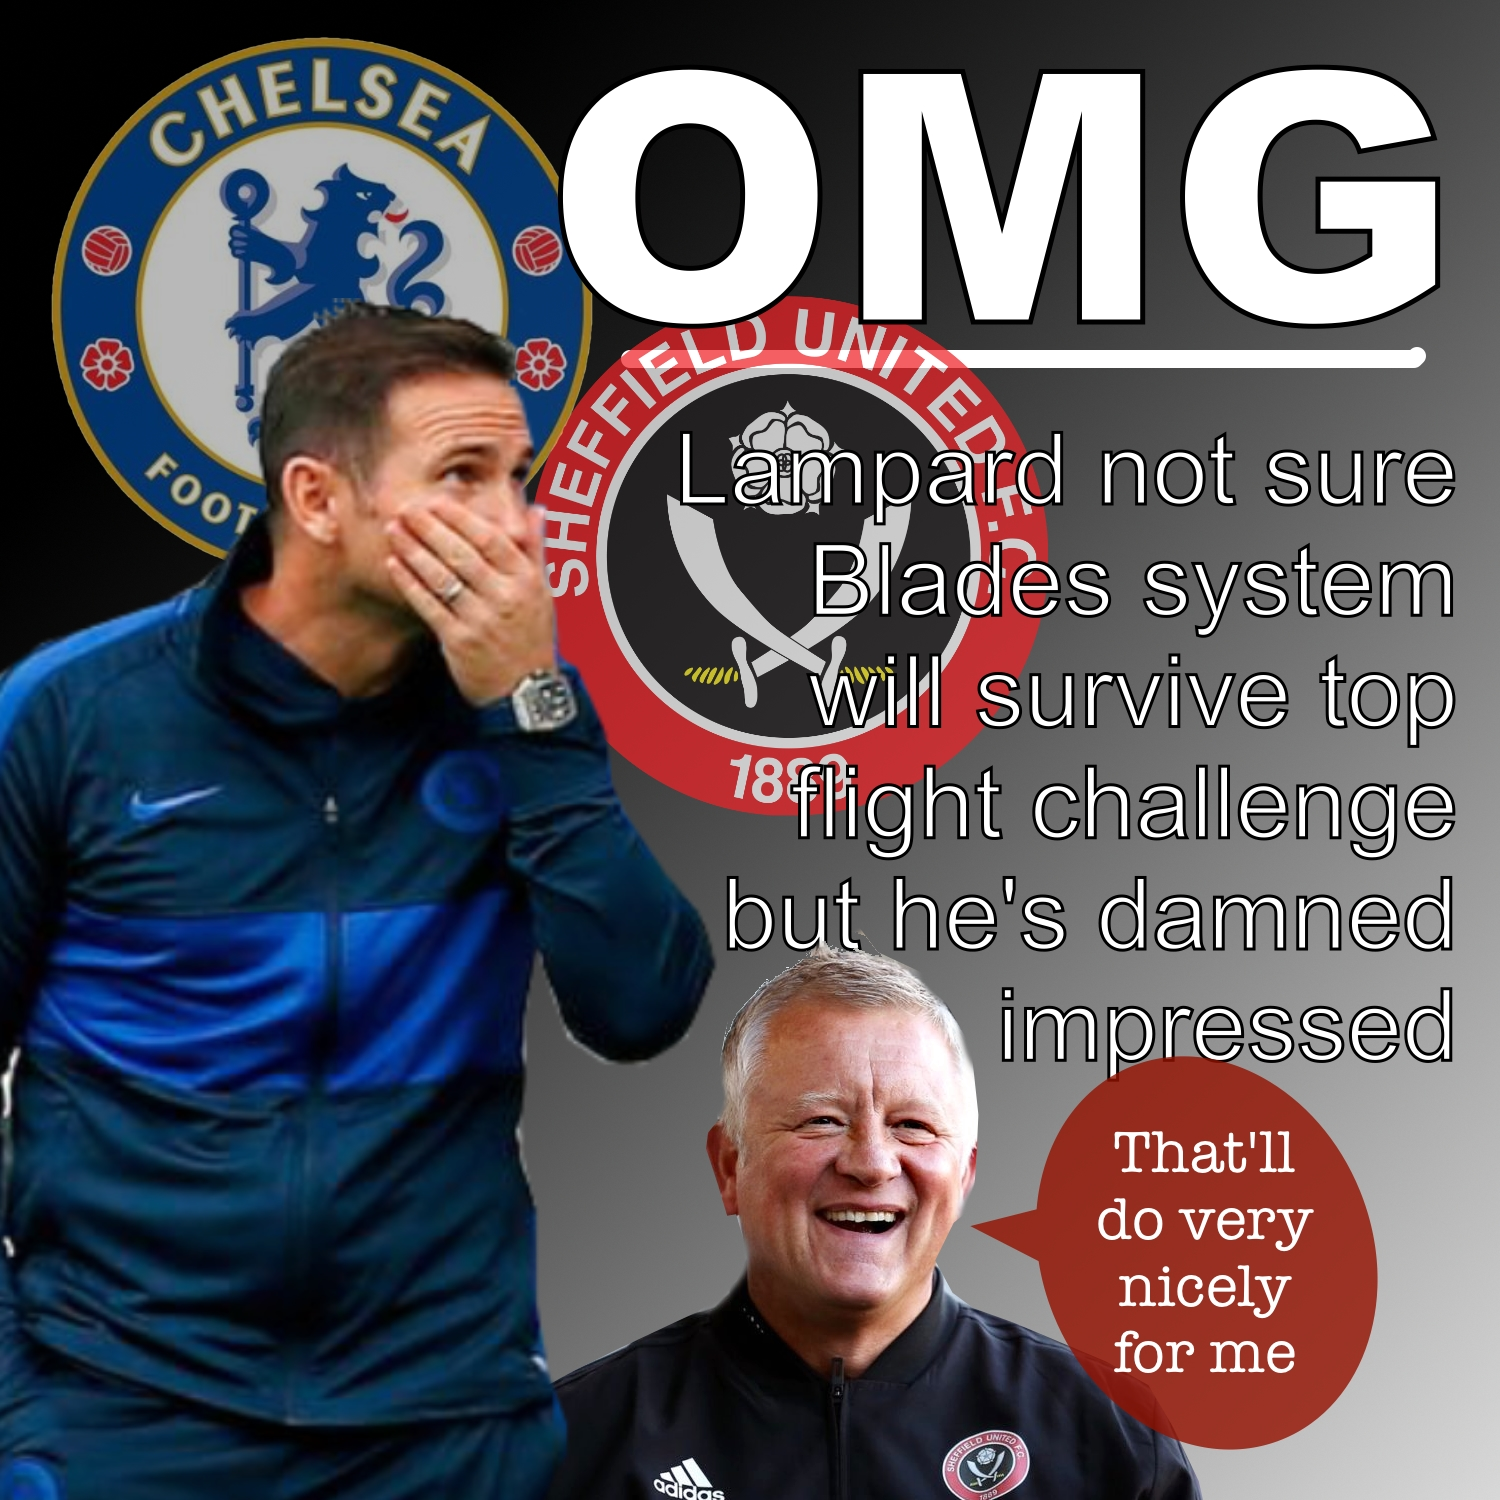 Sheffield United impress stunned Chelsea boss Frank Lampard after Blades recovery at Stamford Bridge